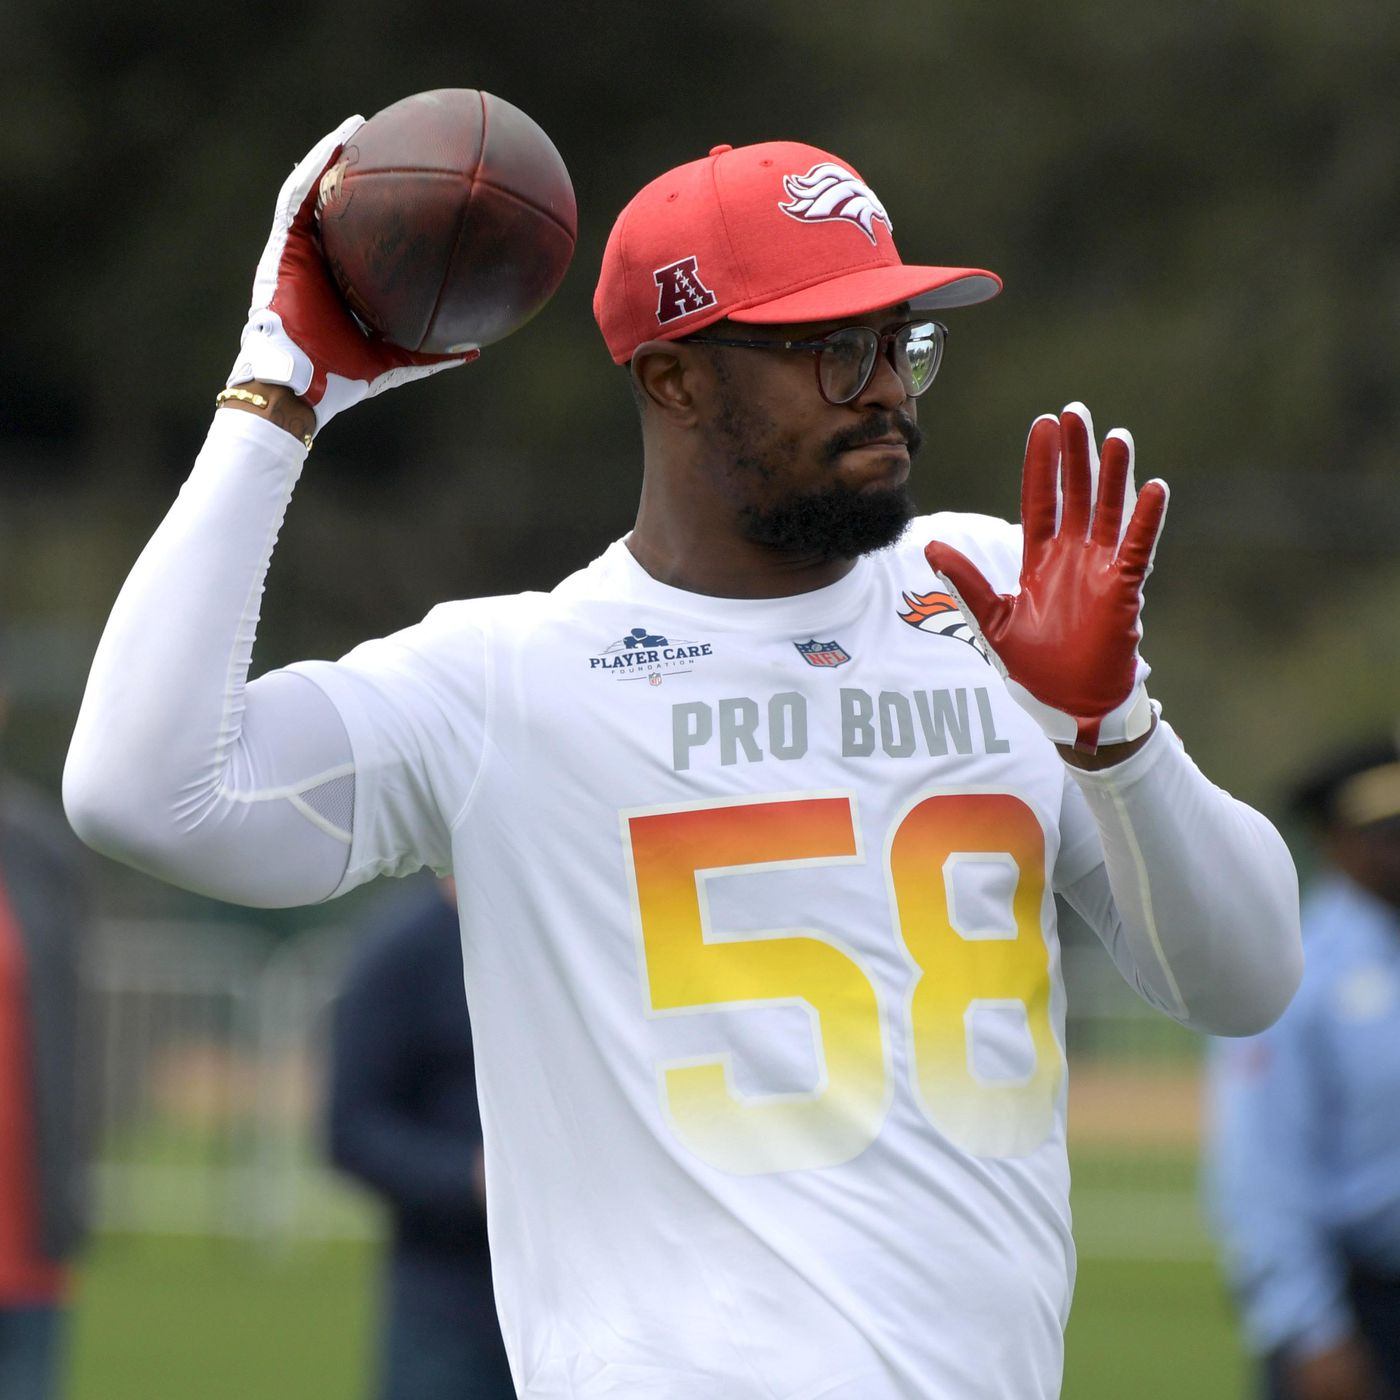 0de92e4f929 NFL Pro Bowl 2019 - Live Updates - Mile High Report